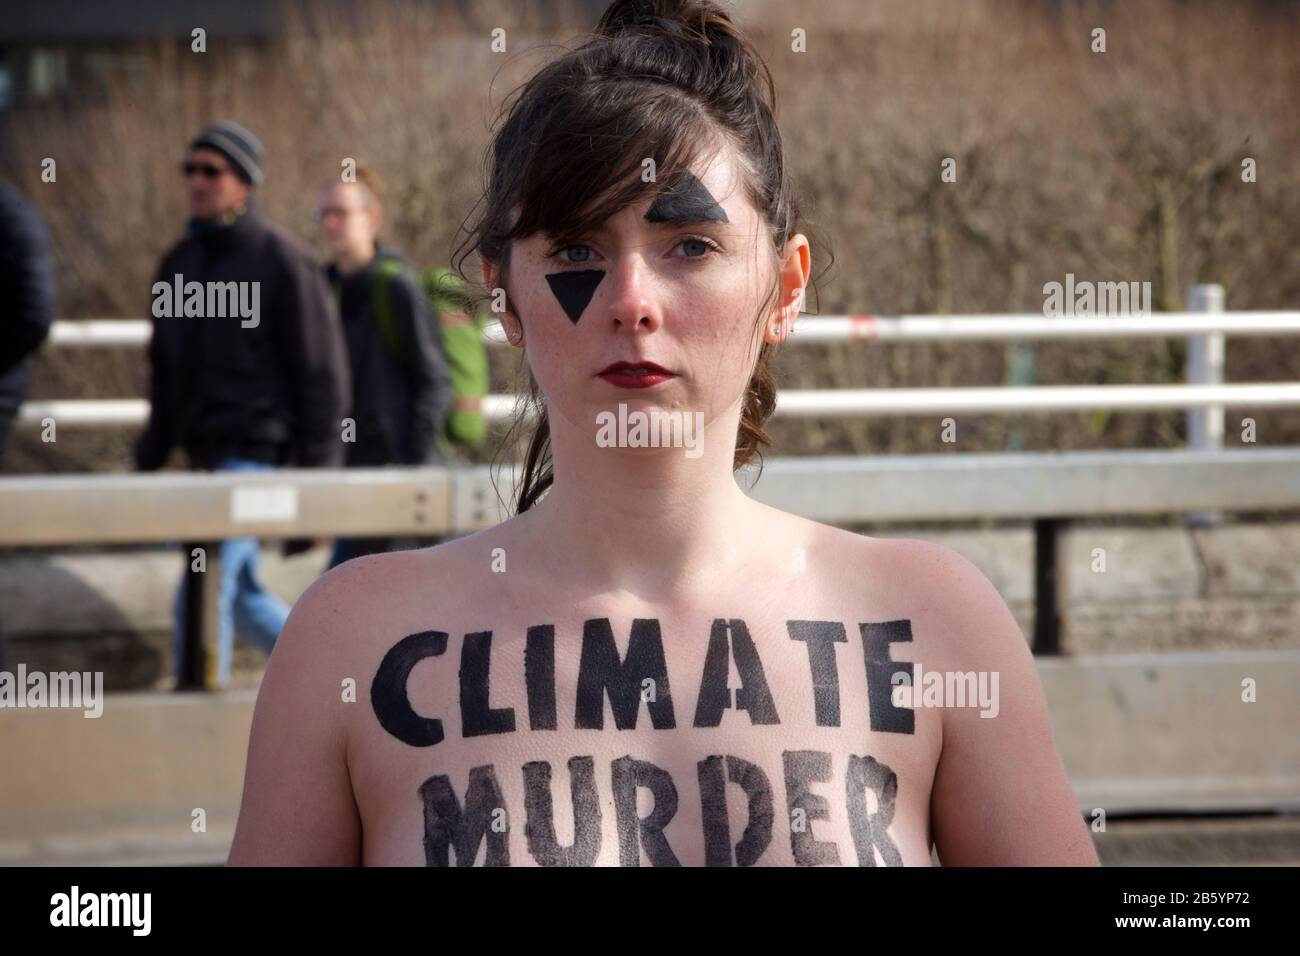 """London, UK. 08th Mar, 2020. 08.03.20 - A group of 31 women formed a chain across Waterloo Bridge to """"highlight the disproportionate impact of the climate and ecological emergency on women"""" Credit: Gareth Morris/Alamy Live News Stock Photo"""